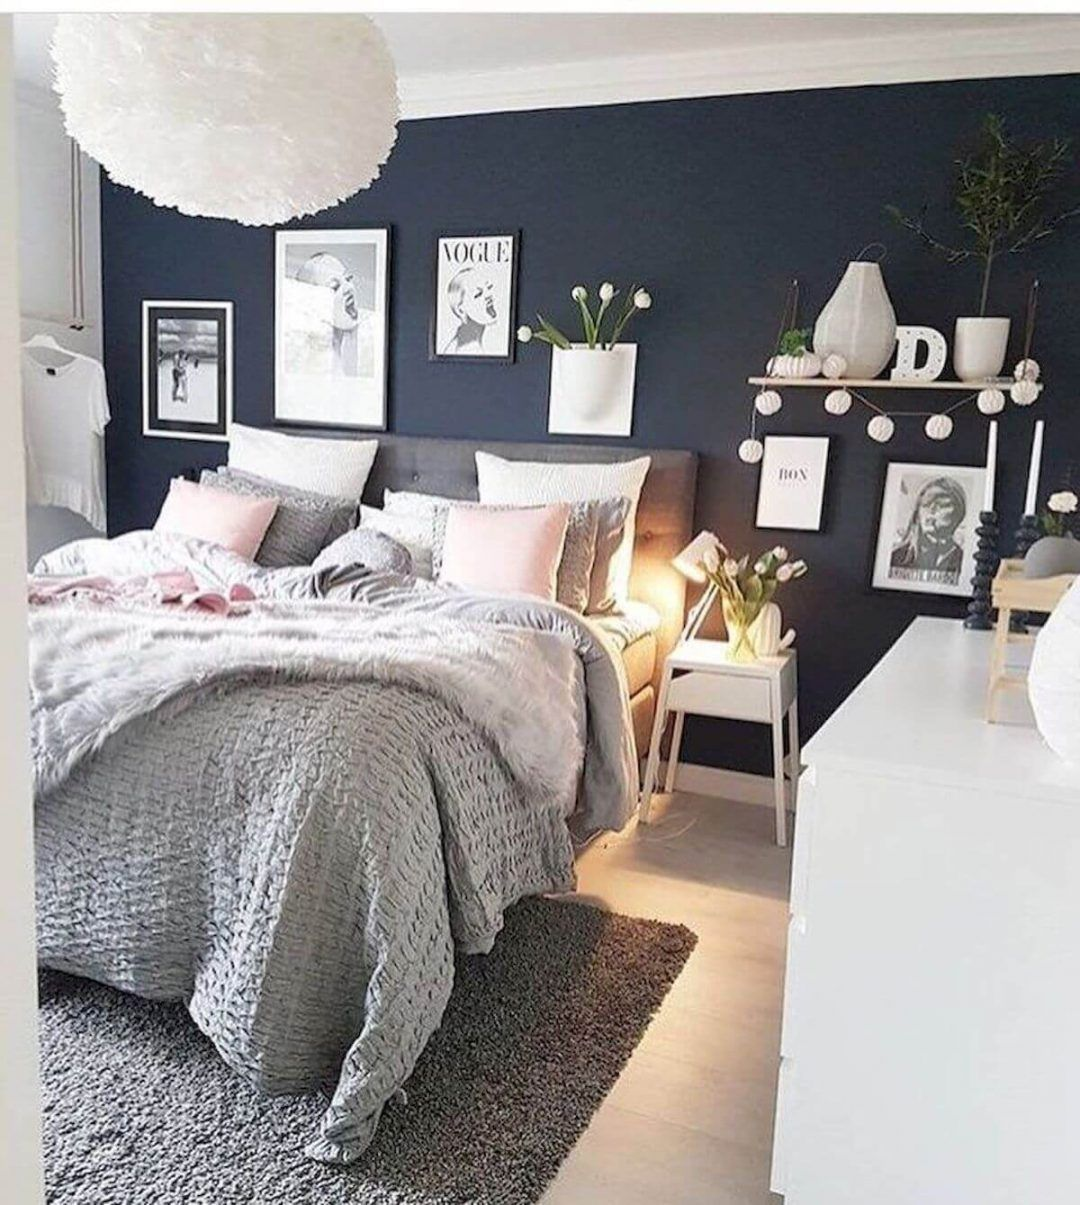 25 Scandinavian Bedroom Ideas To Give Airy And Stylish Look - 16Q